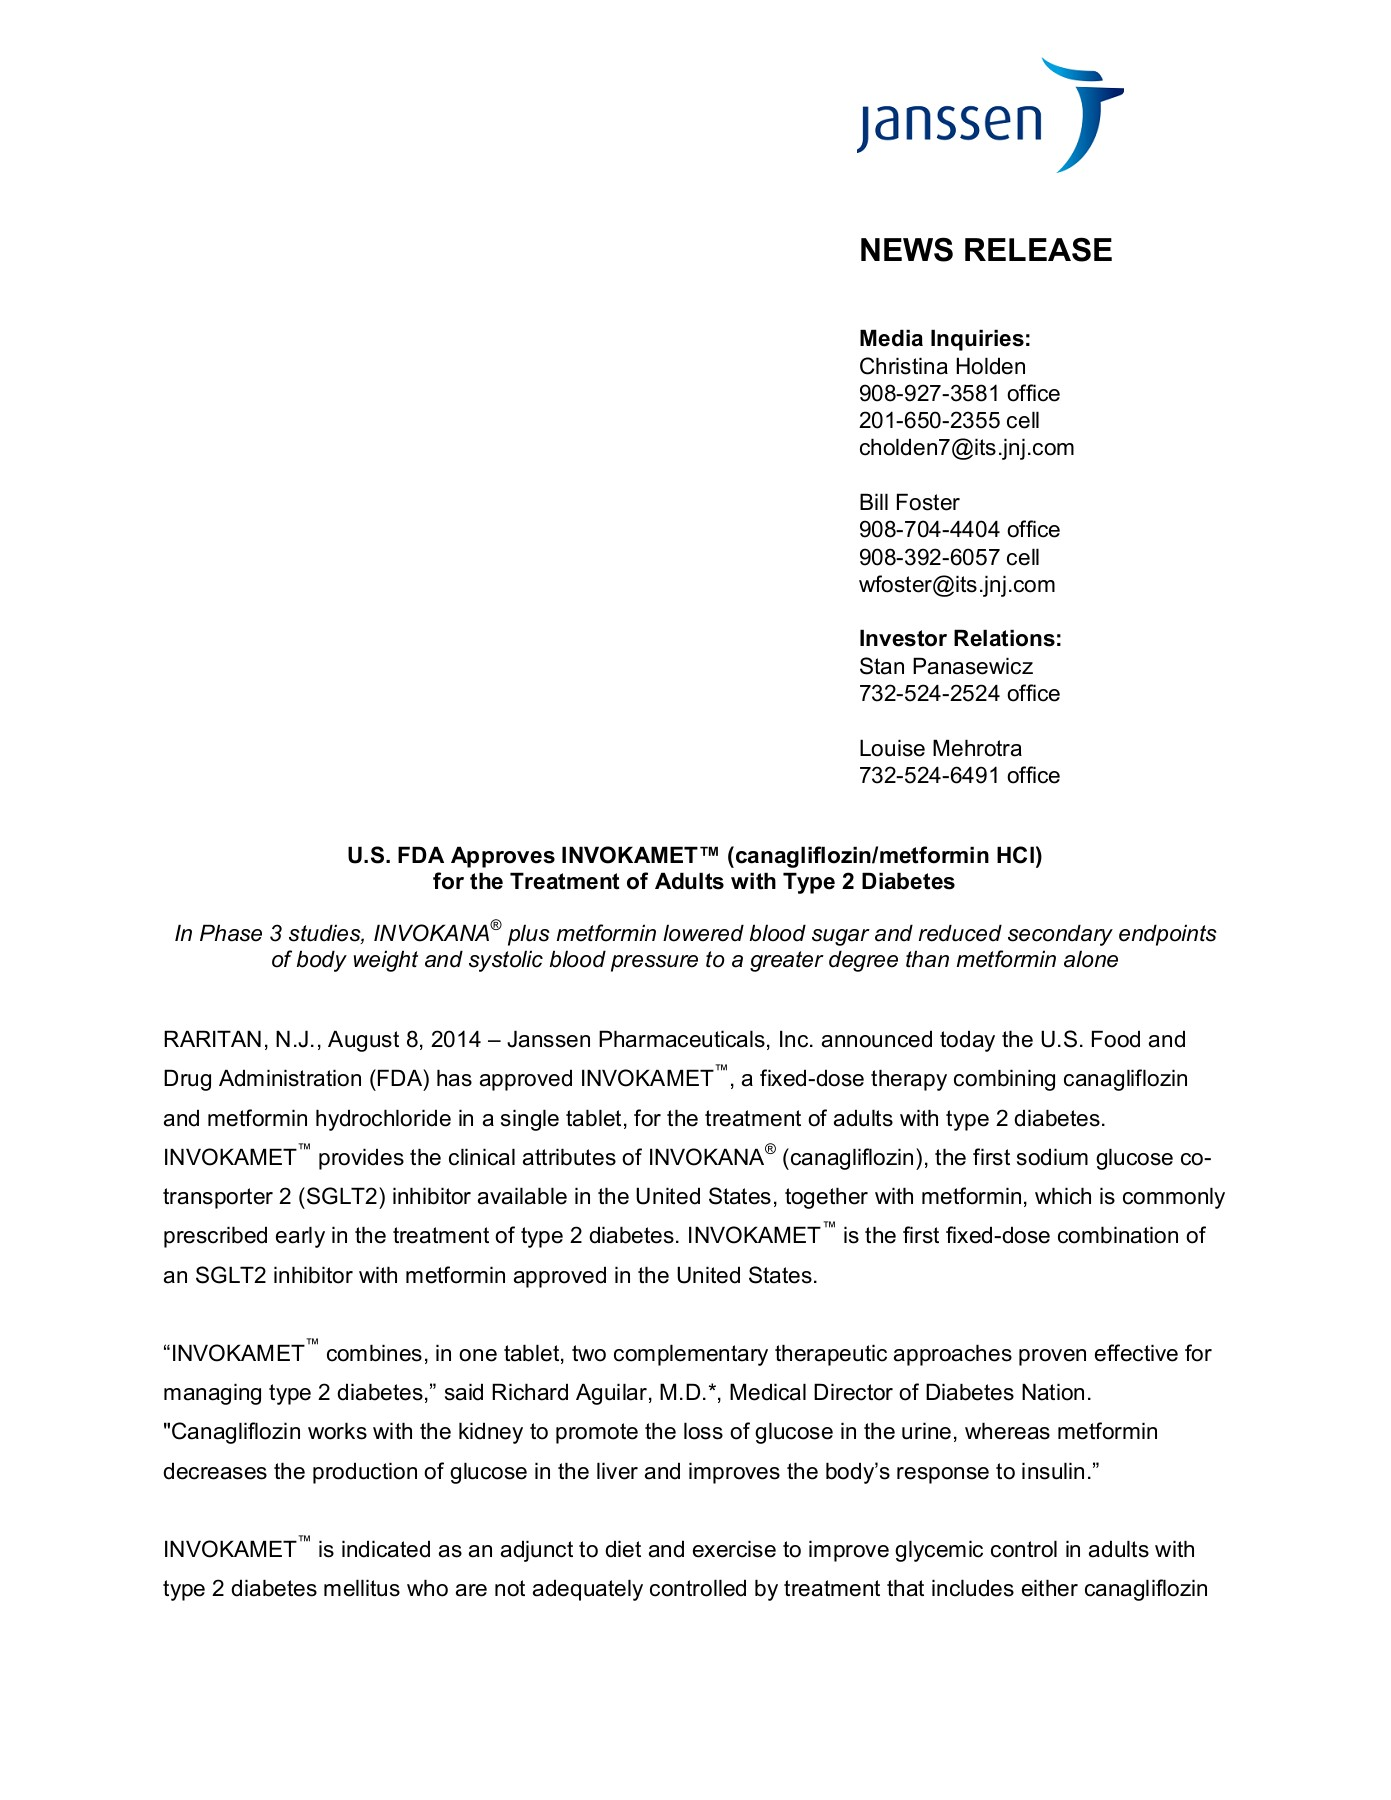 NEWS RELEASE - janssenpharmaceuticalsinc com Pages 1 - 8 - Text